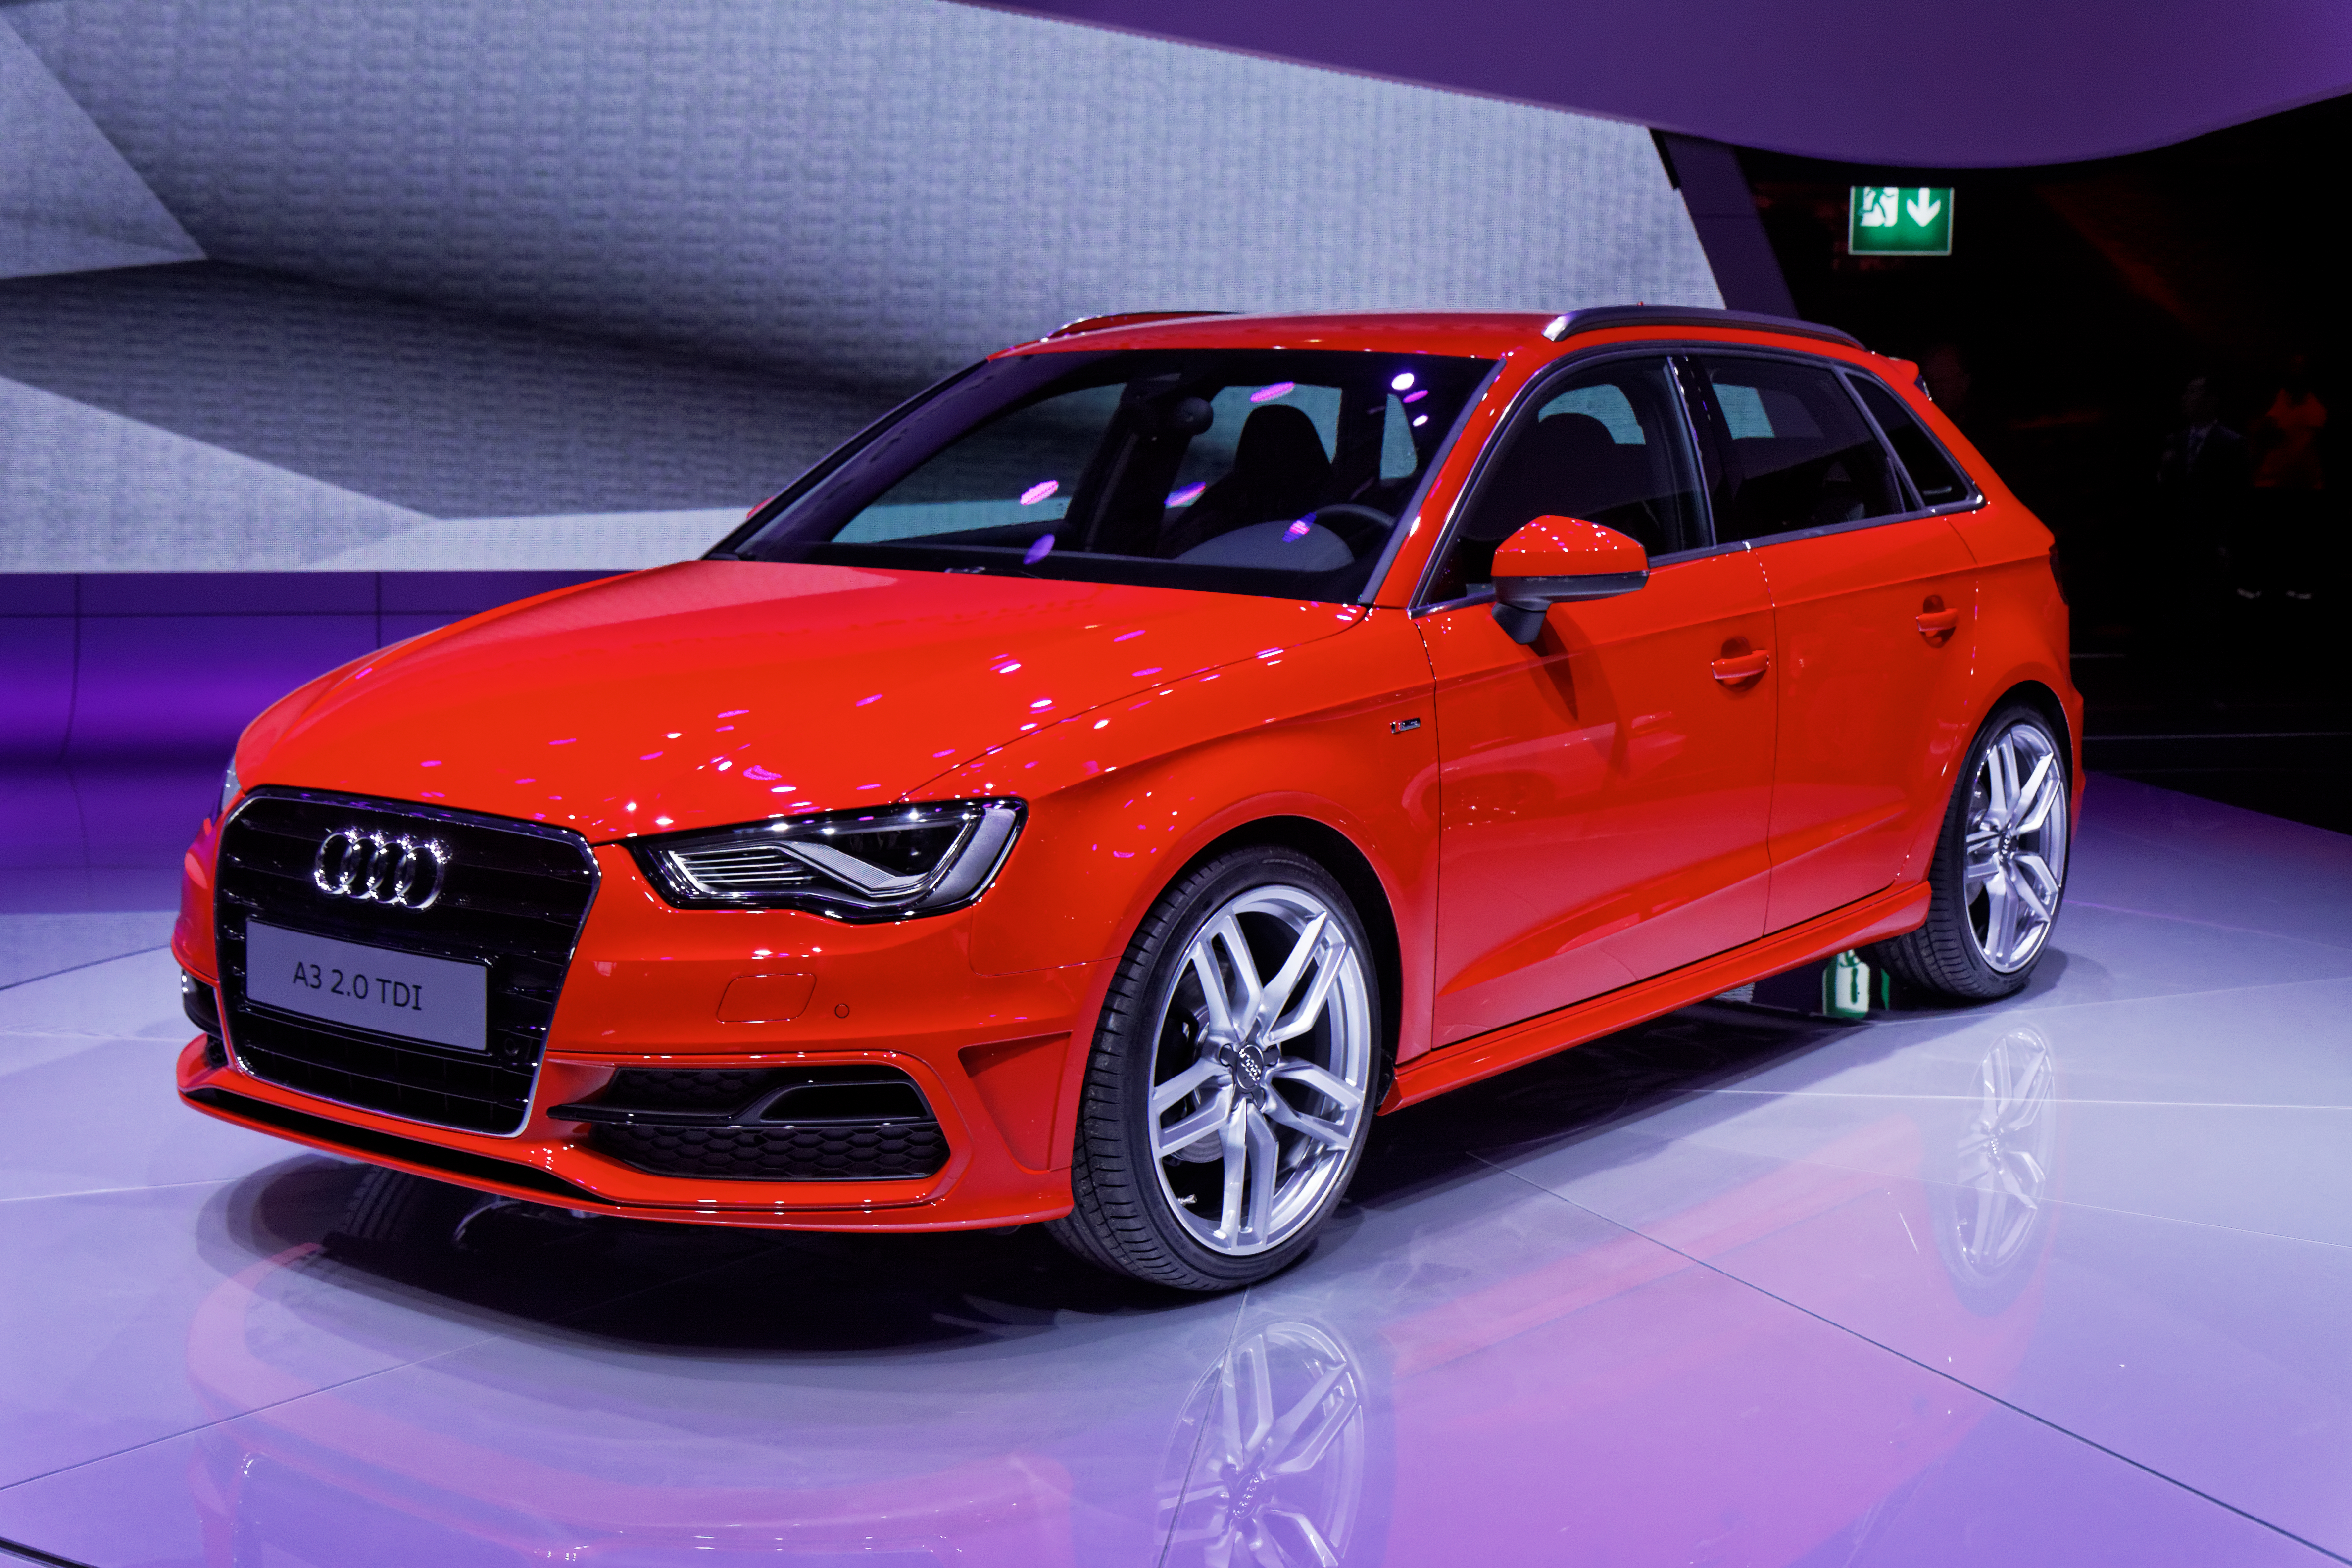 file audi a3 mondial de l 39 automobile de paris 2012 wikimedia commons. Black Bedroom Furniture Sets. Home Design Ideas